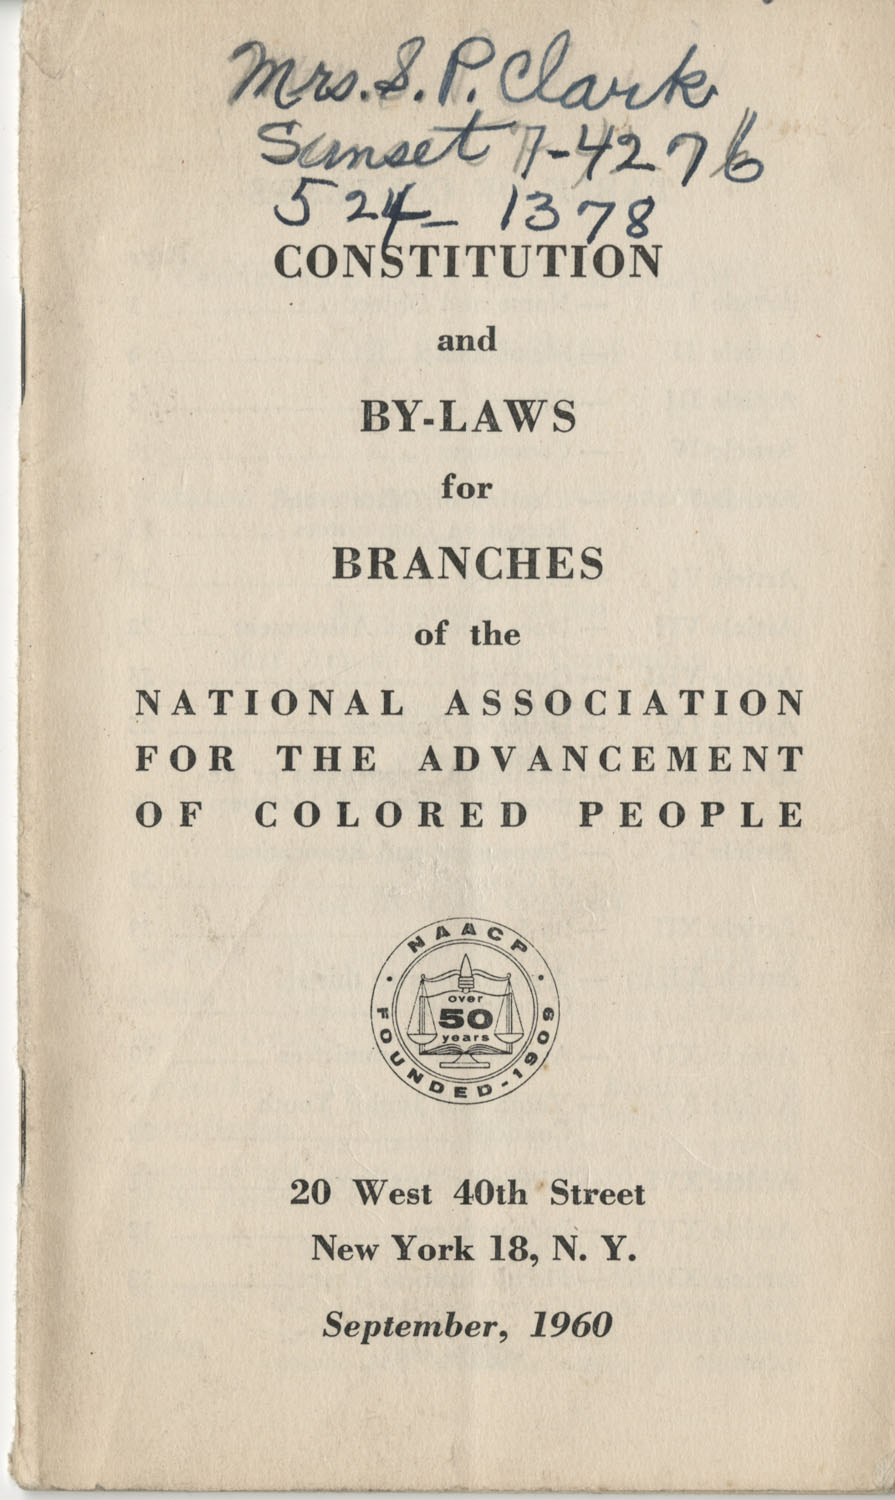 Constitutions and By-Laws, September 1960